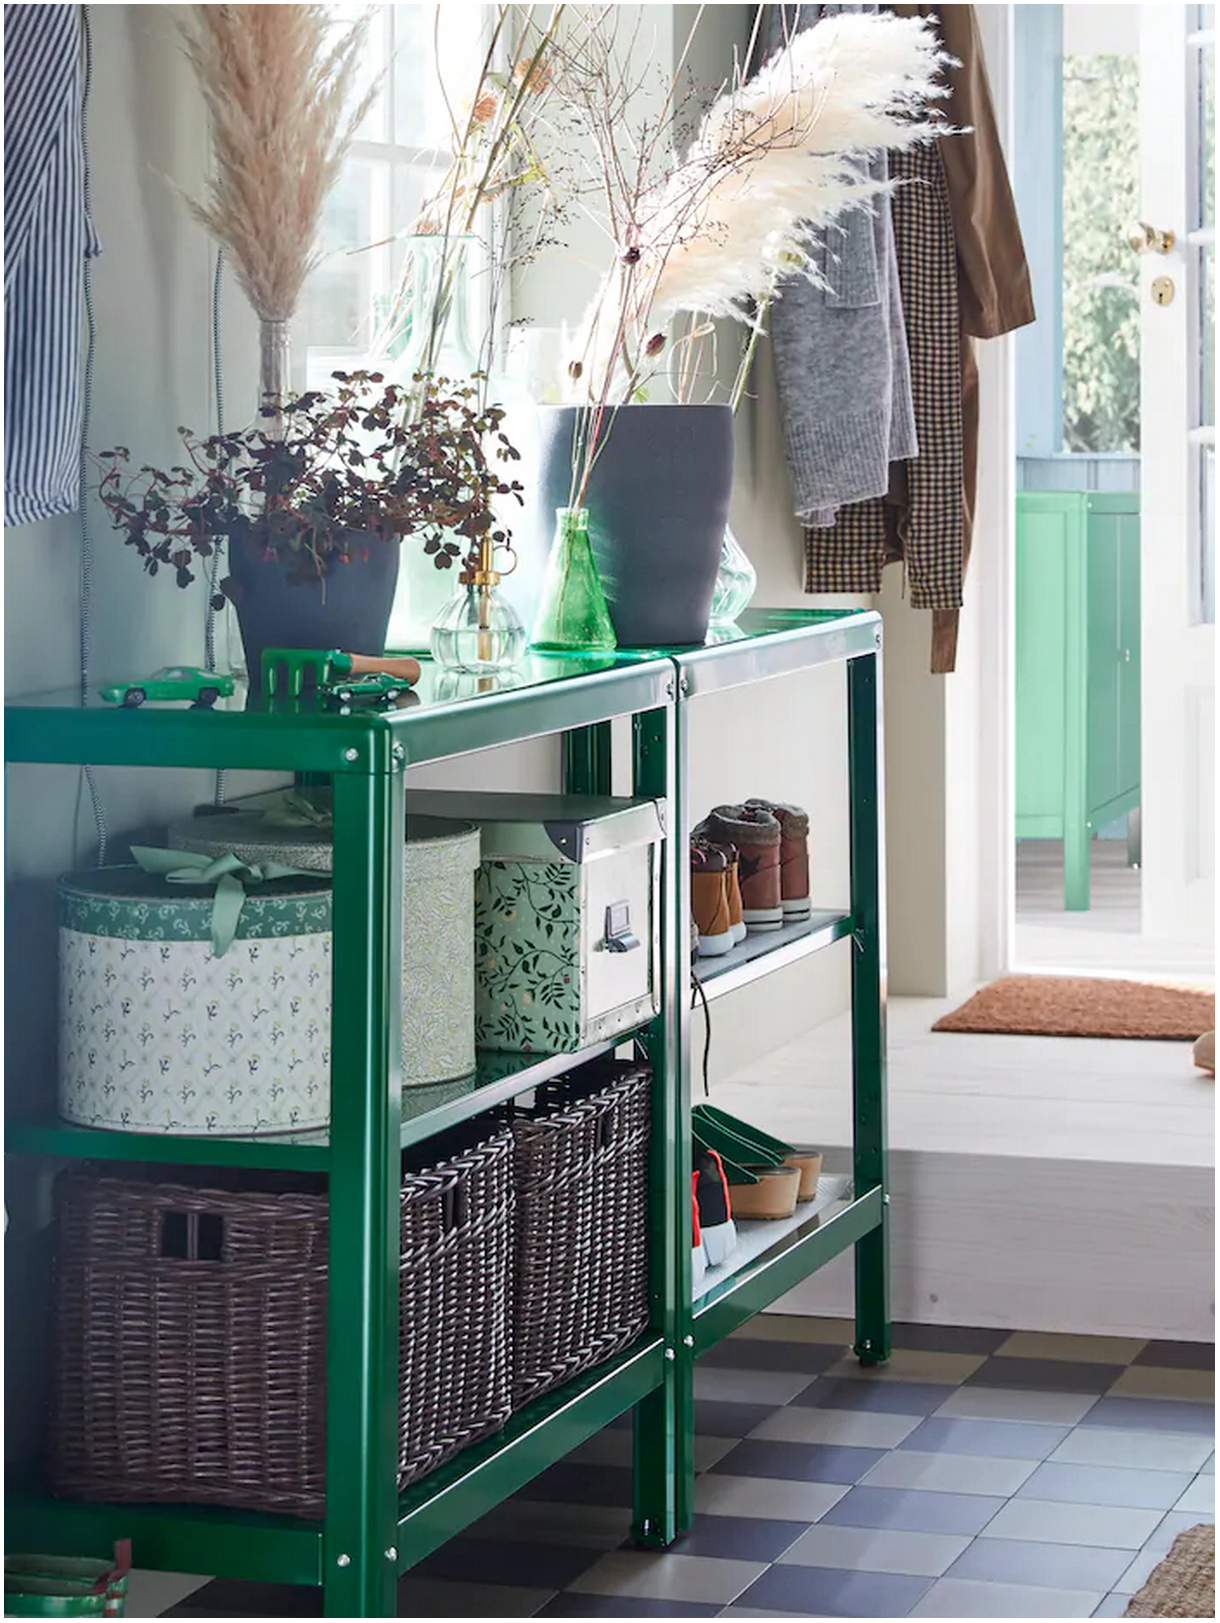 Arrange the Entrance of Your Home in a Functional and Practical Way